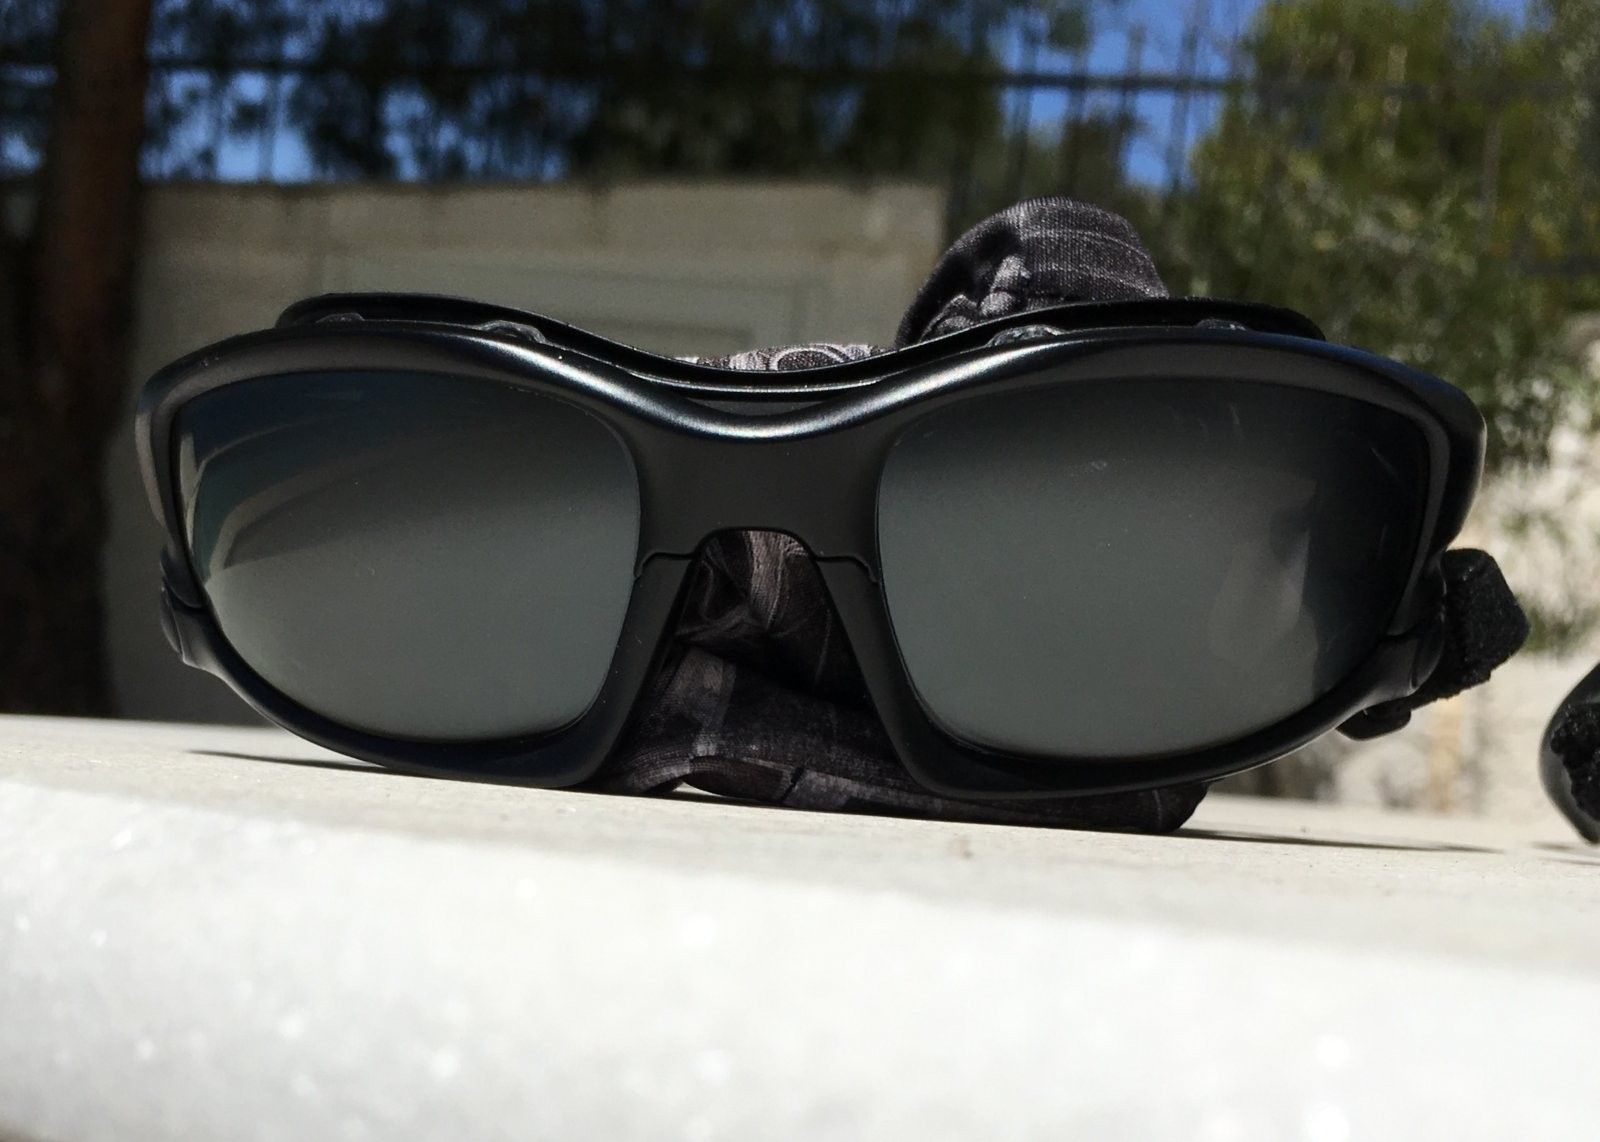 Split/Wind Jackets with Dillon Matte Lenses (Rare) - FullSizeRender 10.jpg